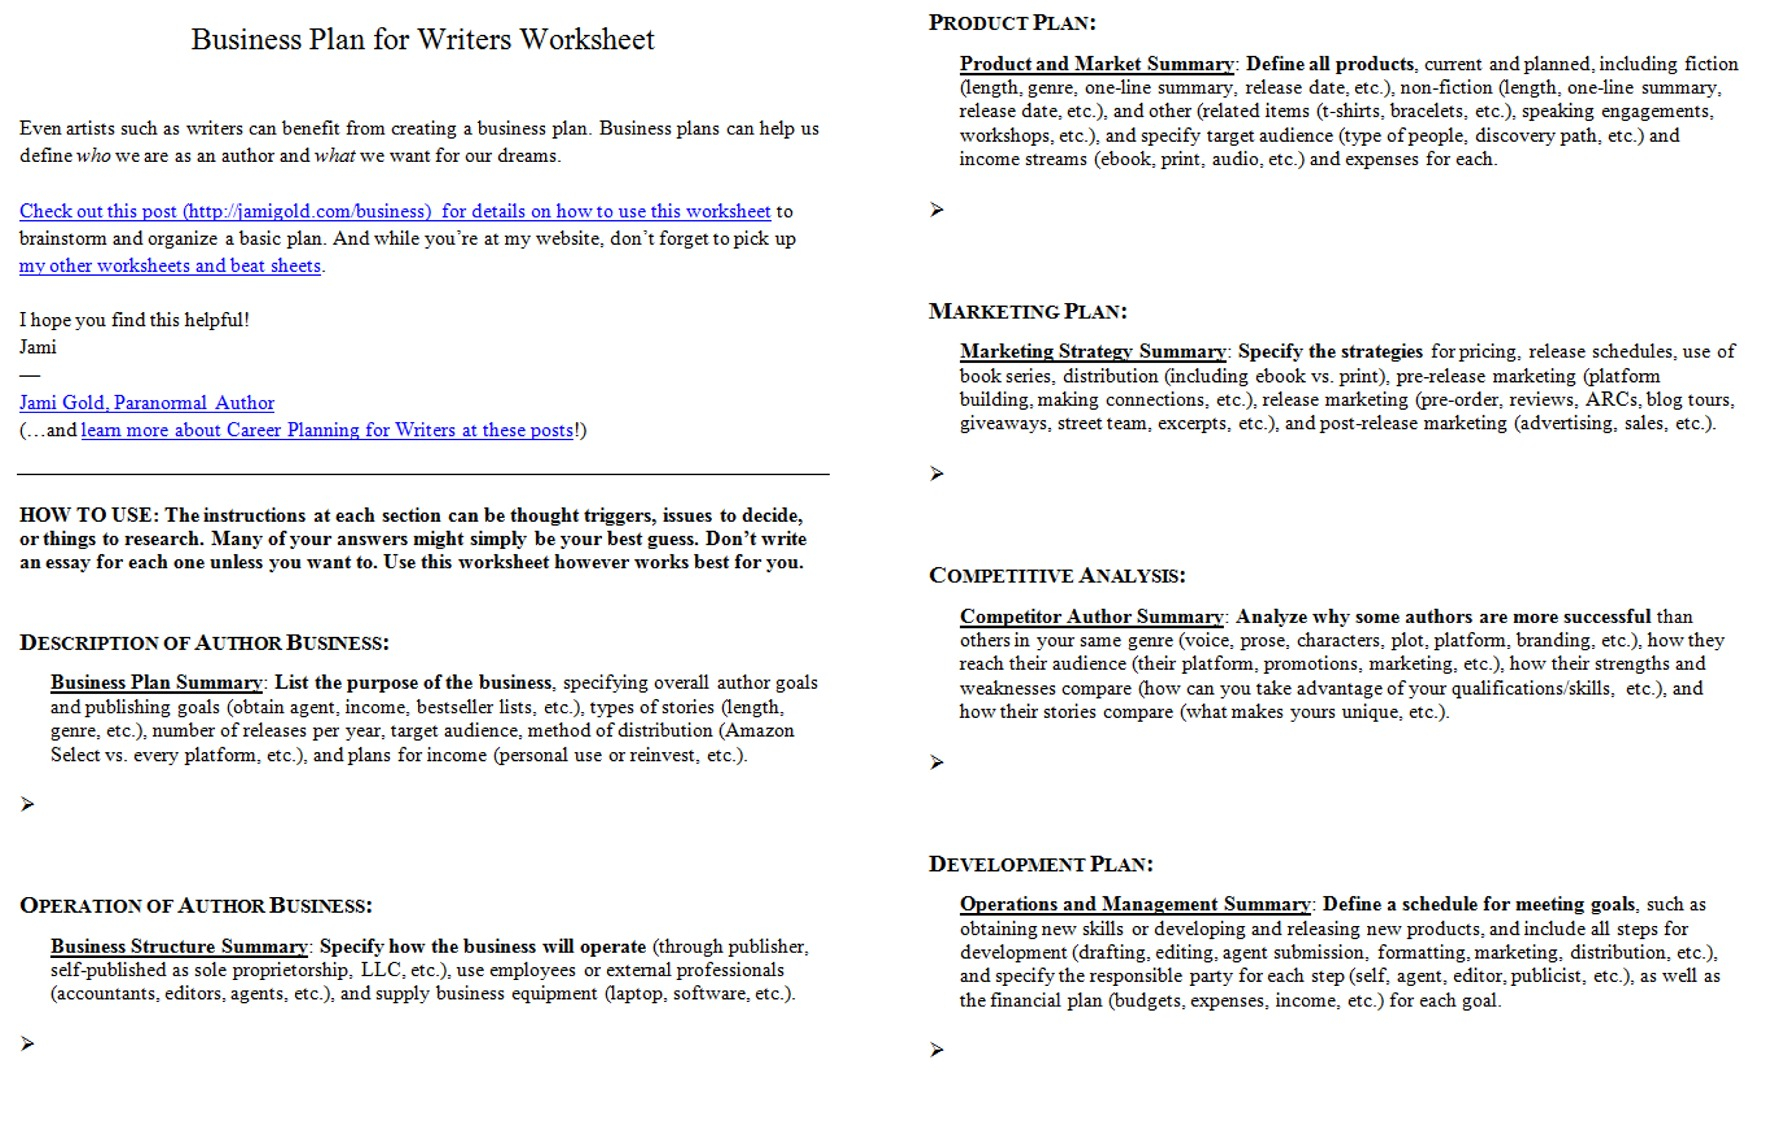 Aldiablosus  Nice Worksheets For Writers  Jami Gold Paranormal Author With Fascinating Screen Shot Of Both Pages Of The Business Plan For Writers Worksheet With Easy On The Eye Ncaa Core Course Worksheet Also Chapter  Chemical Bonding Worksheet Answers In Addition Parallel Lines Transversal Angles Worksheet And Progressive Era Worksheets As Well As English Homework Worksheets Additionally Times Table Test Worksheet Printable From Jamigoldcom With Aldiablosus  Fascinating Worksheets For Writers  Jami Gold Paranormal Author With Easy On The Eye Screen Shot Of Both Pages Of The Business Plan For Writers Worksheet And Nice Ncaa Core Course Worksheet Also Chapter  Chemical Bonding Worksheet Answers In Addition Parallel Lines Transversal Angles Worksheet From Jamigoldcom